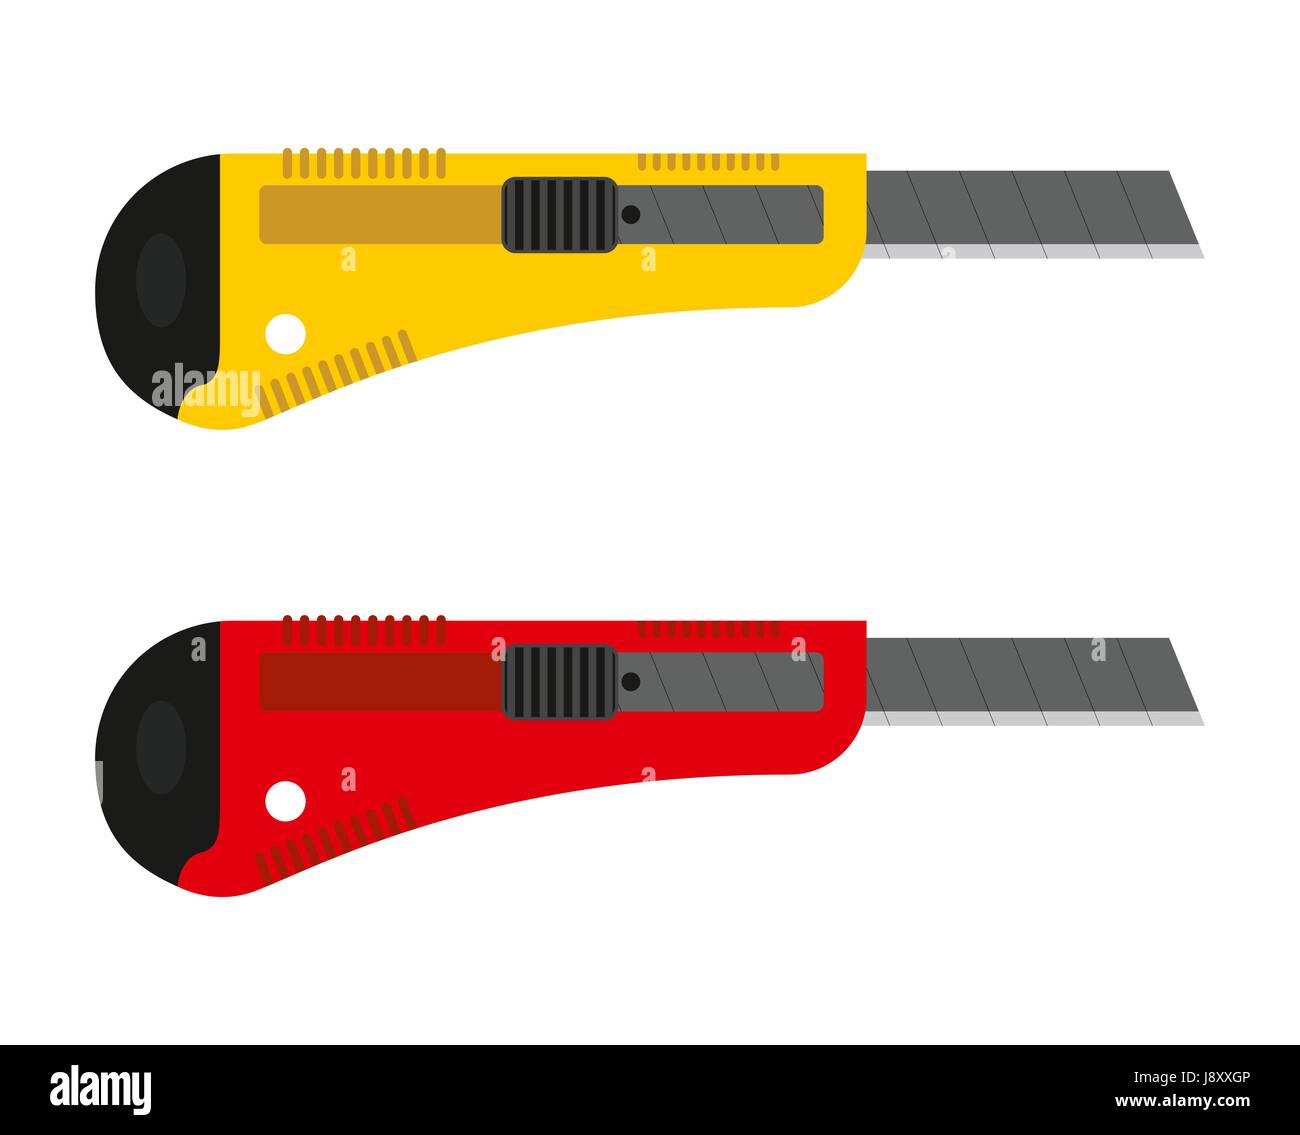 Office knife set. Stationery cutter with replaceable blades. Stock Vector